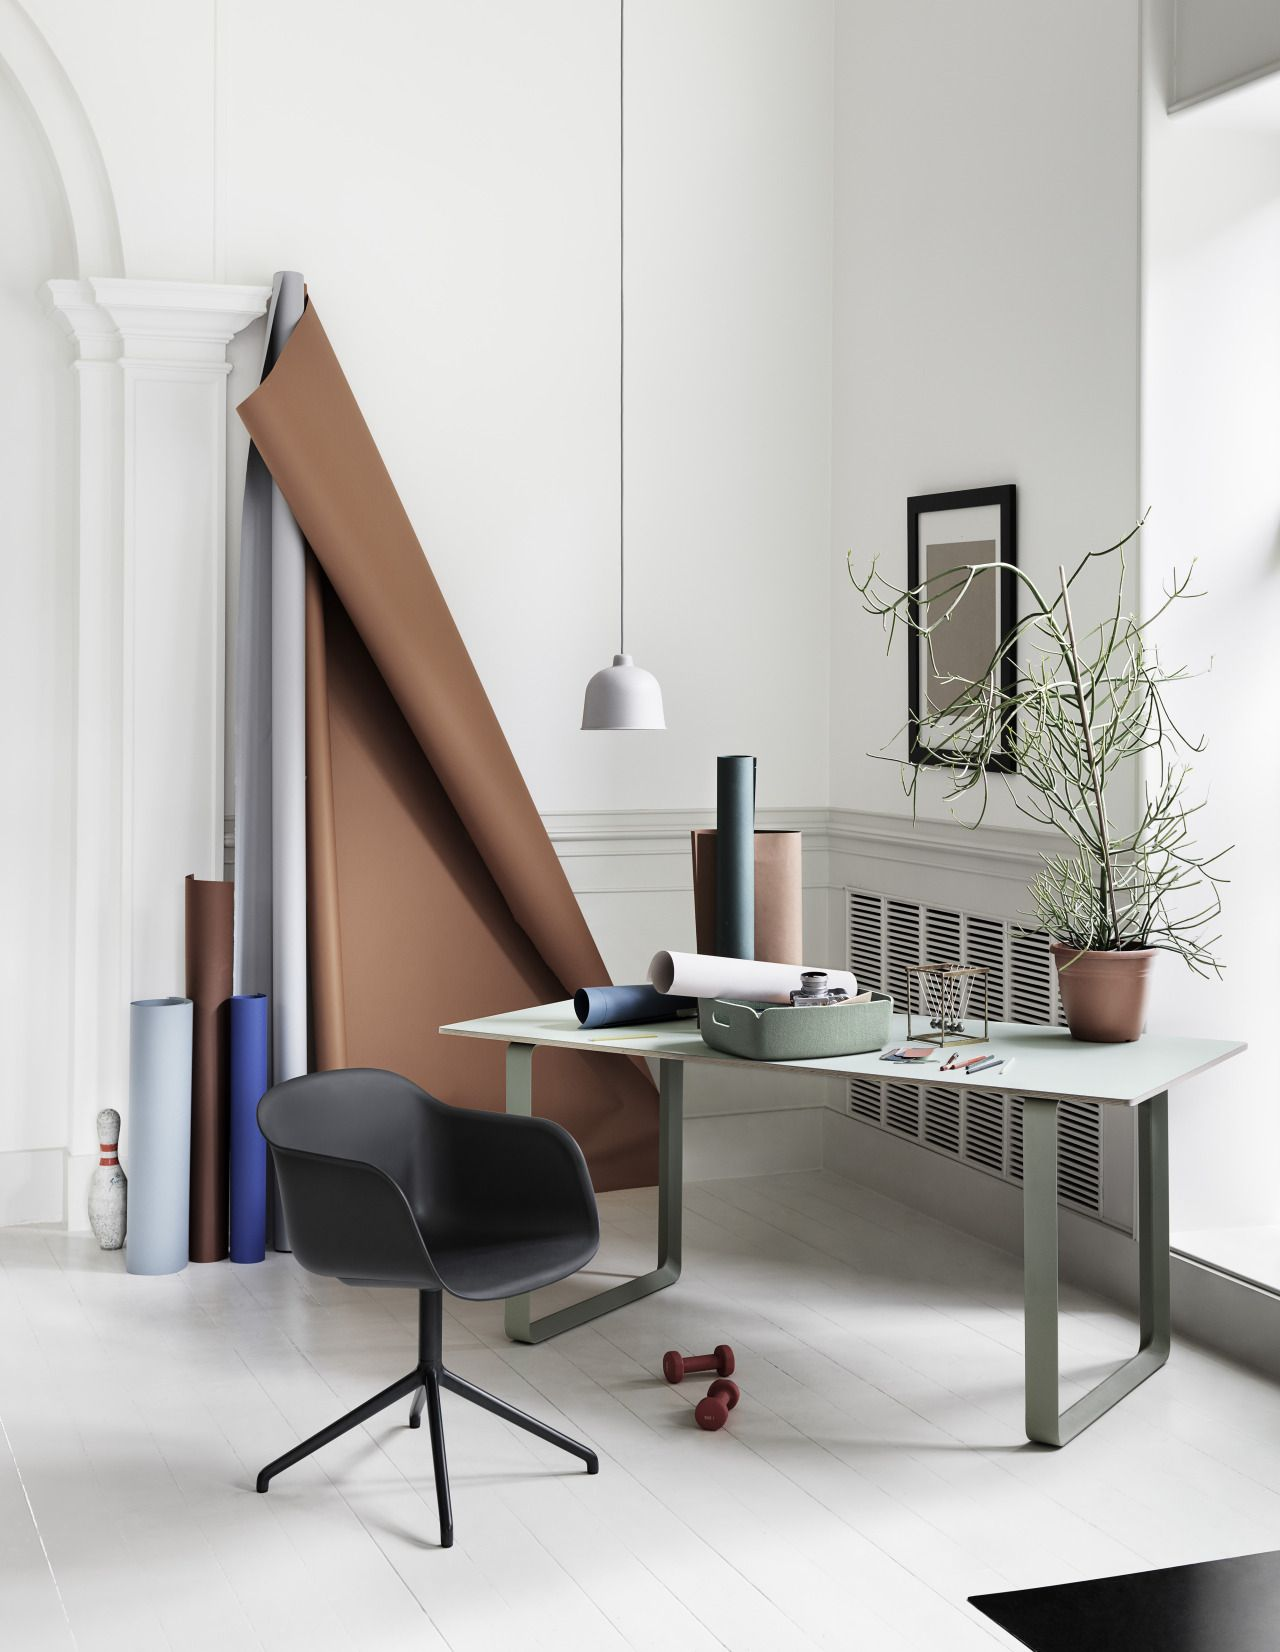 Muuto  scandinavian  design  home  inspiration  nordic  danish  furniture  muuto  scandinavian  design  home  inspiration  nordic  danish  . Living Room Desk Chair. Home Design Ideas